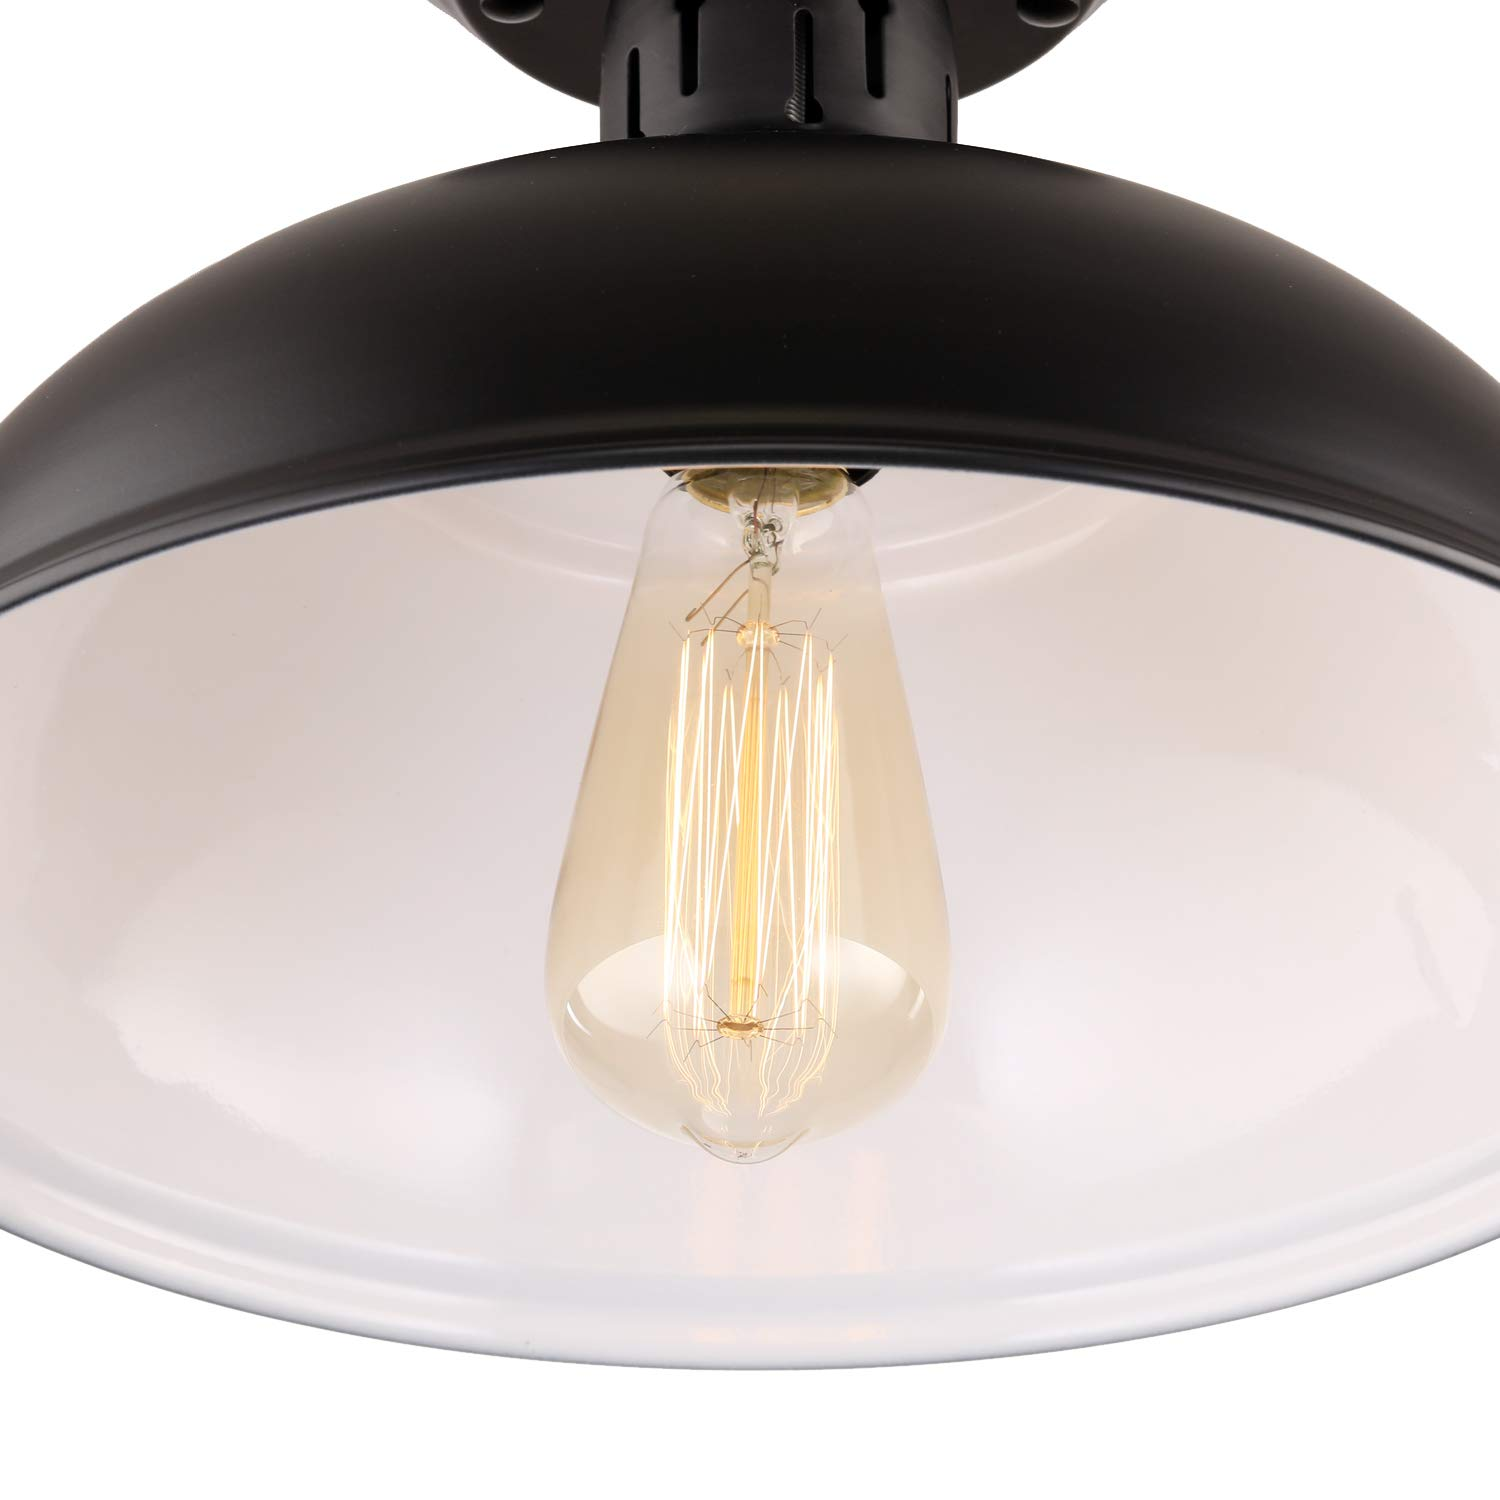 HMVPL Industrial Edison Close To Ceiling Light Rustic Mini Semi Flush Mounted Pendant Lighting With